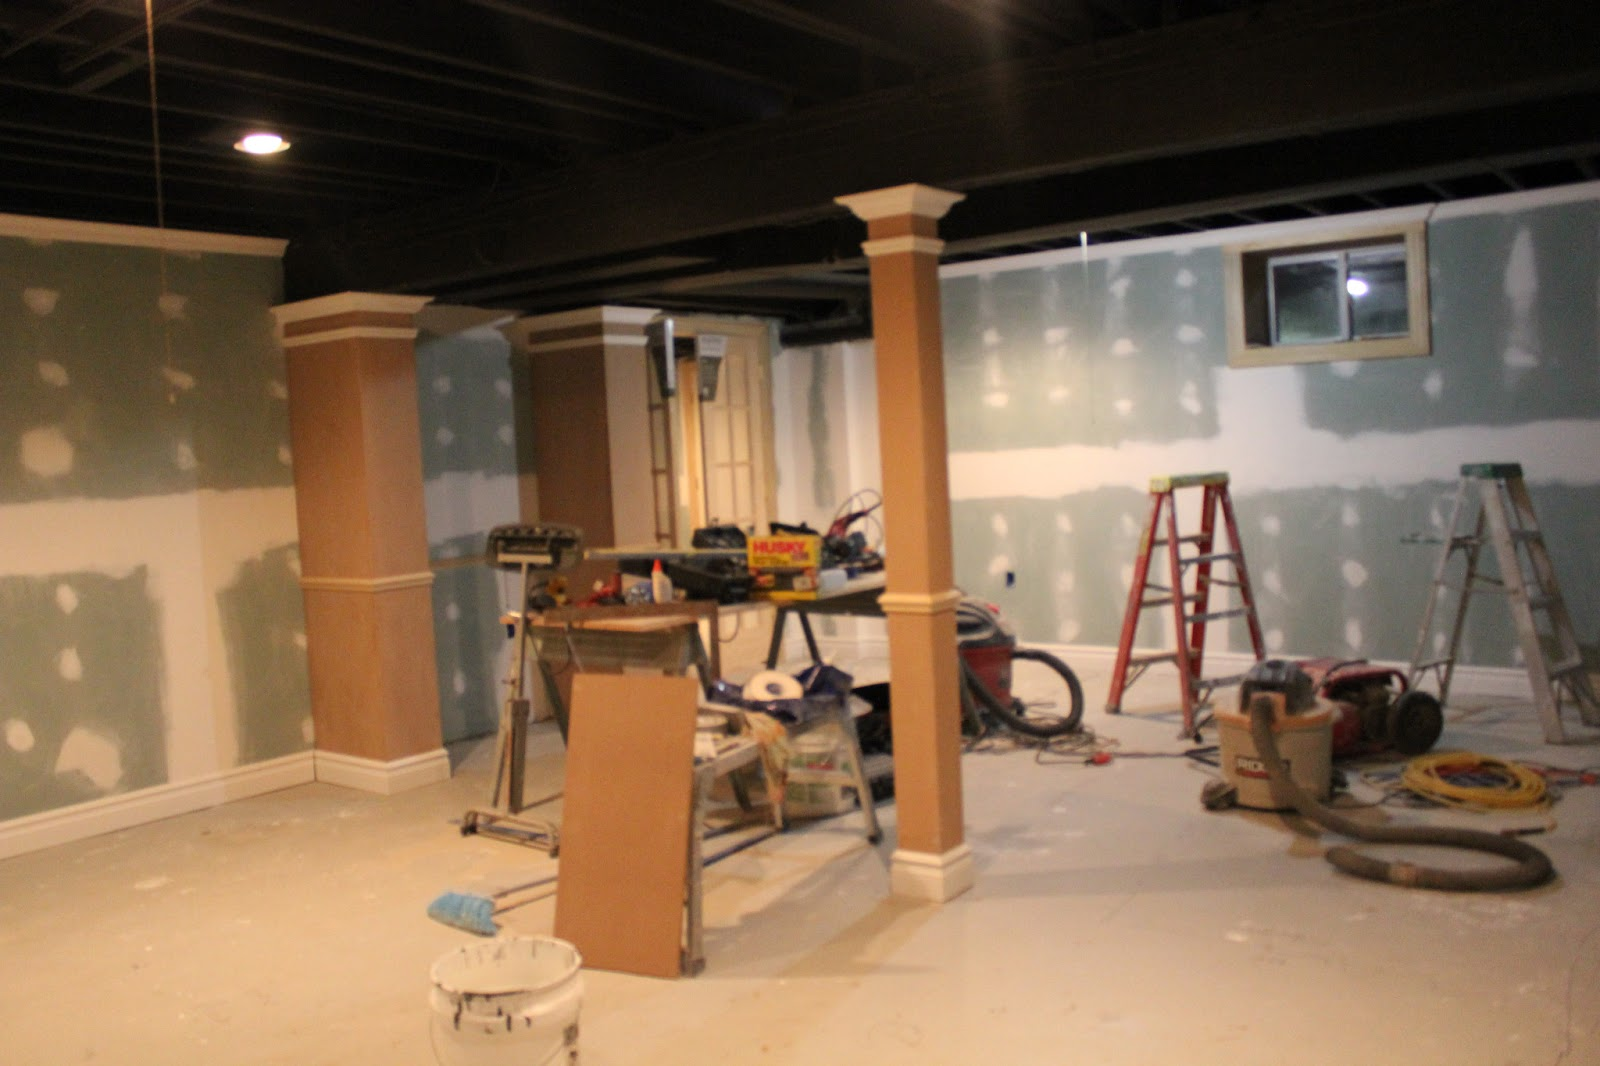 Painting Exposed Wood Ceiling: Basement Remodel With Painted Exposed Ceiling